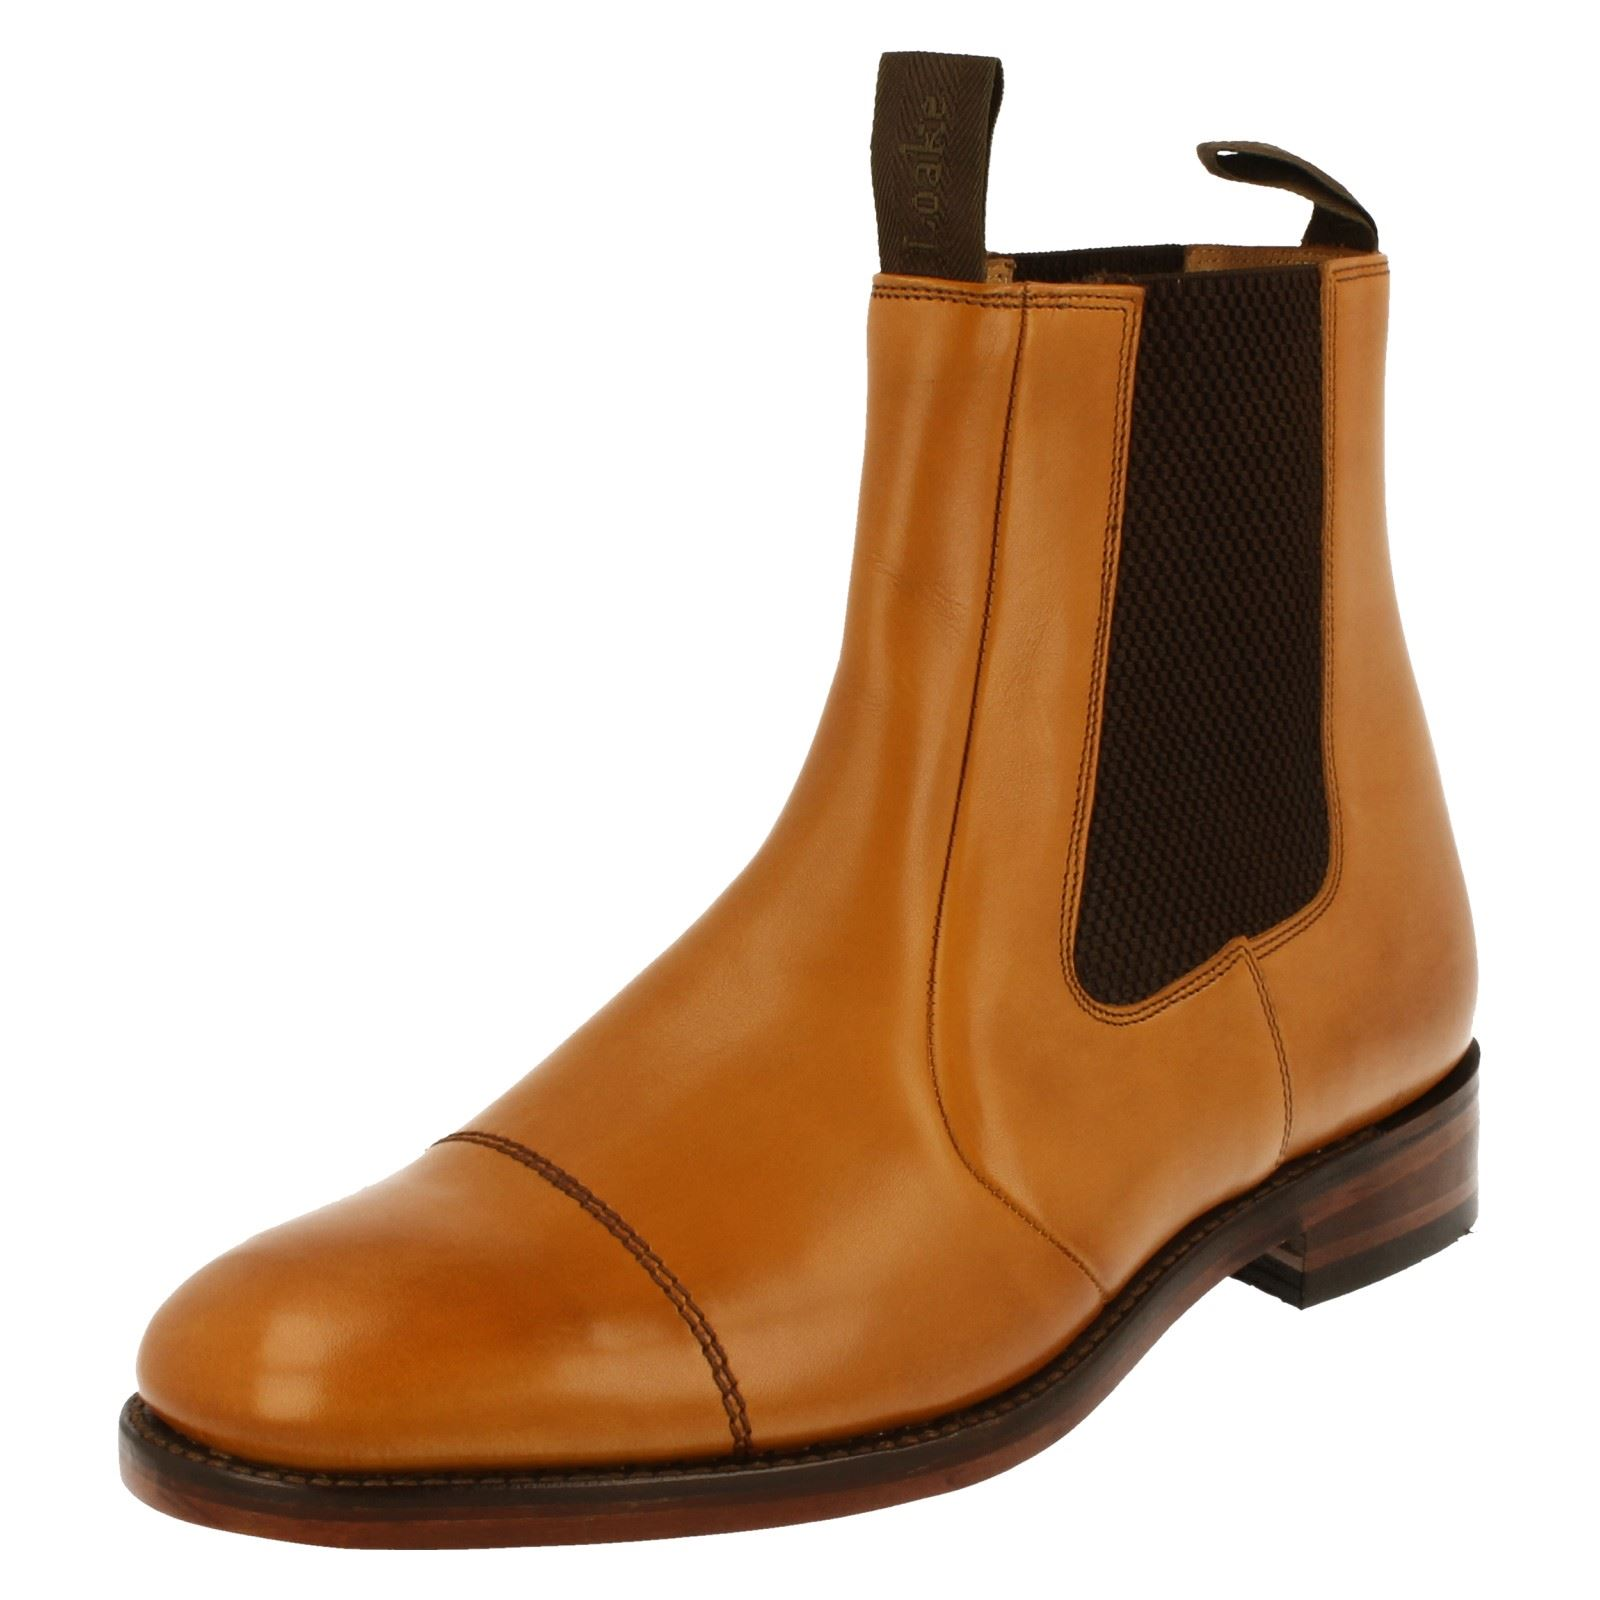 Uomo Loake Dealer Stiefel The Style Style Style Newbury 2 Tan -w 92a190